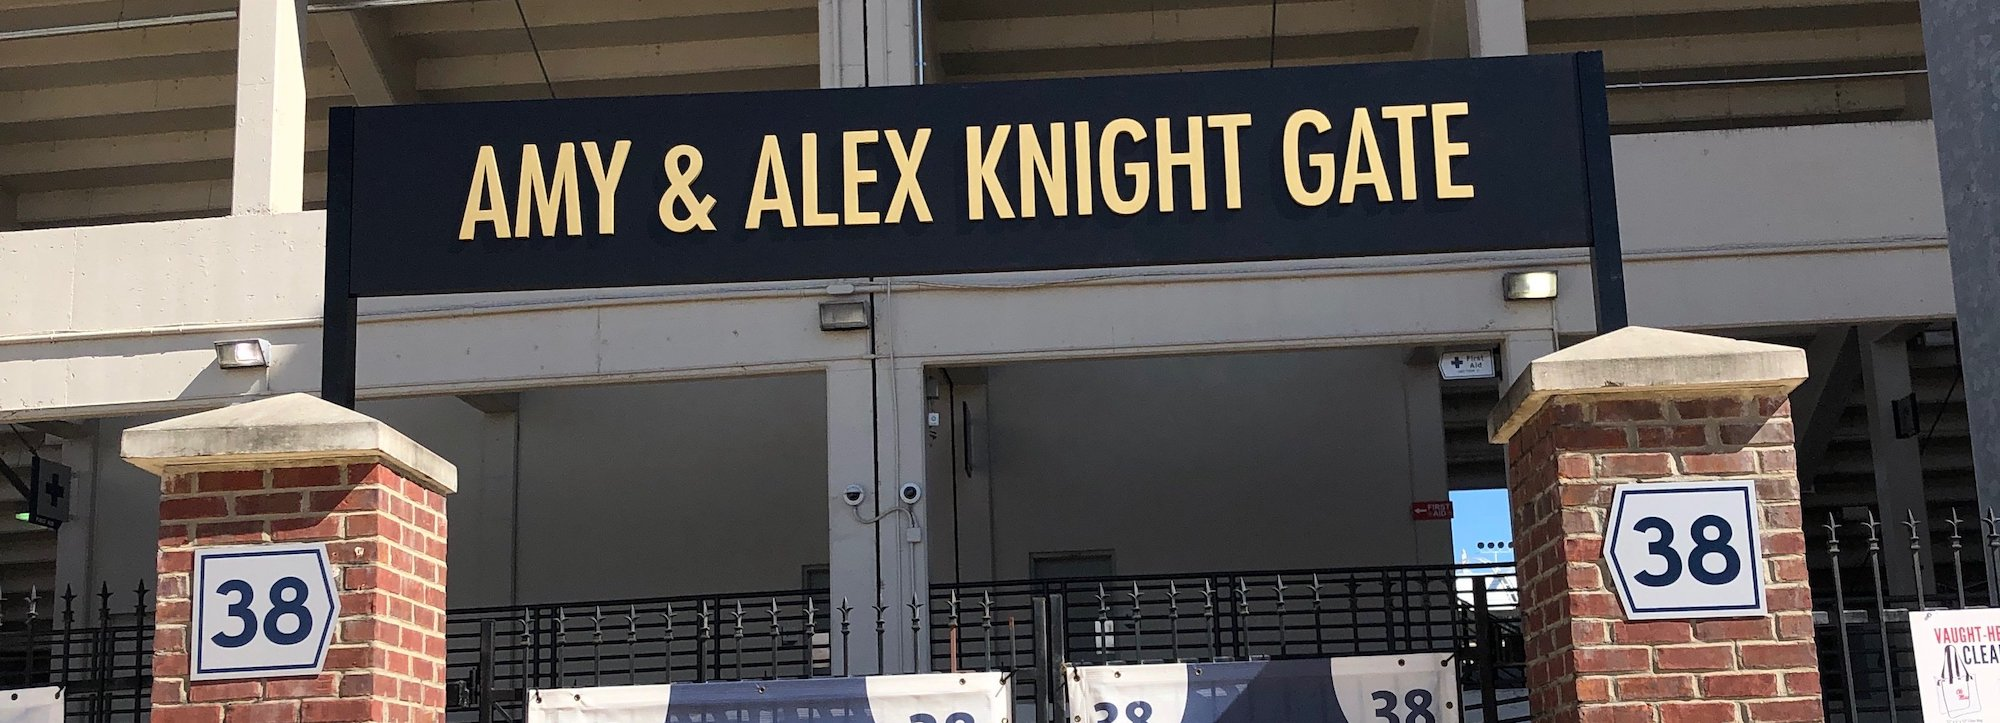 Knight Gift Names Gate 38